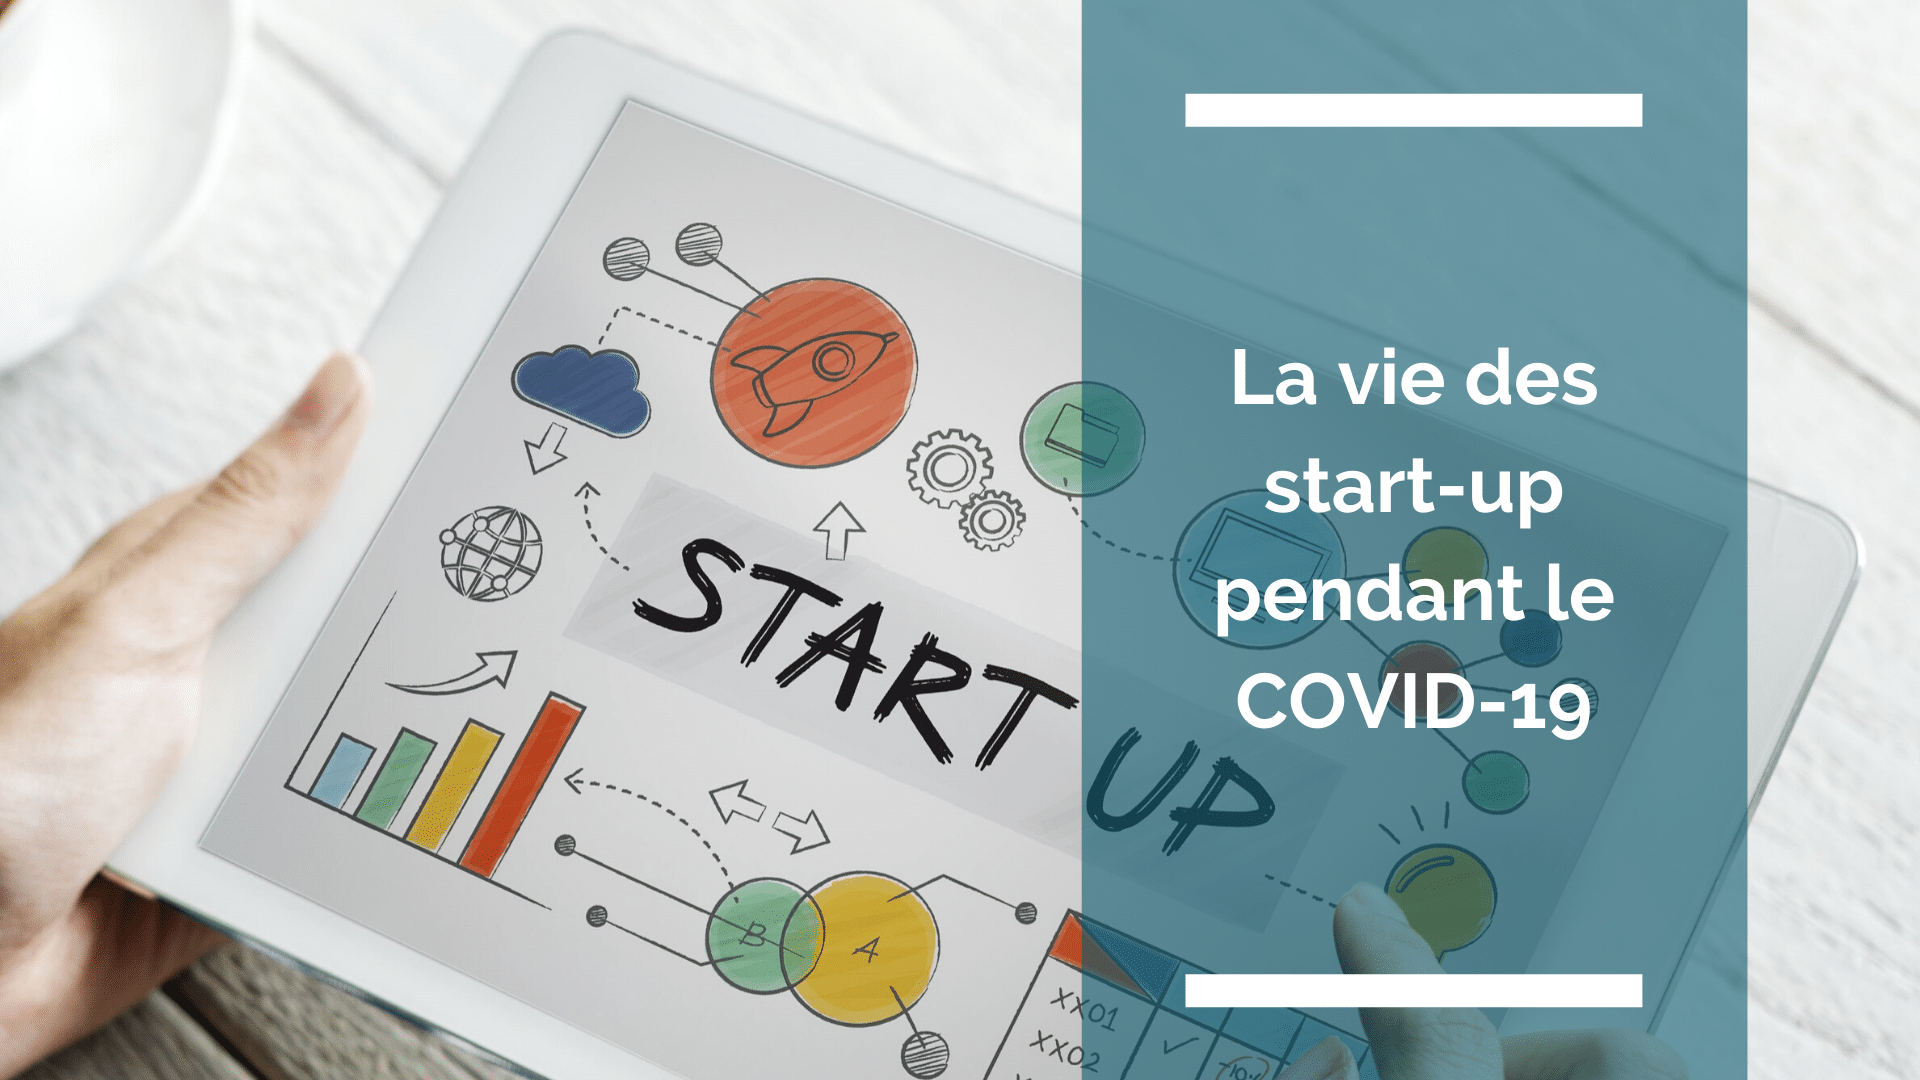 La vie des start-up pendant le COVID-19